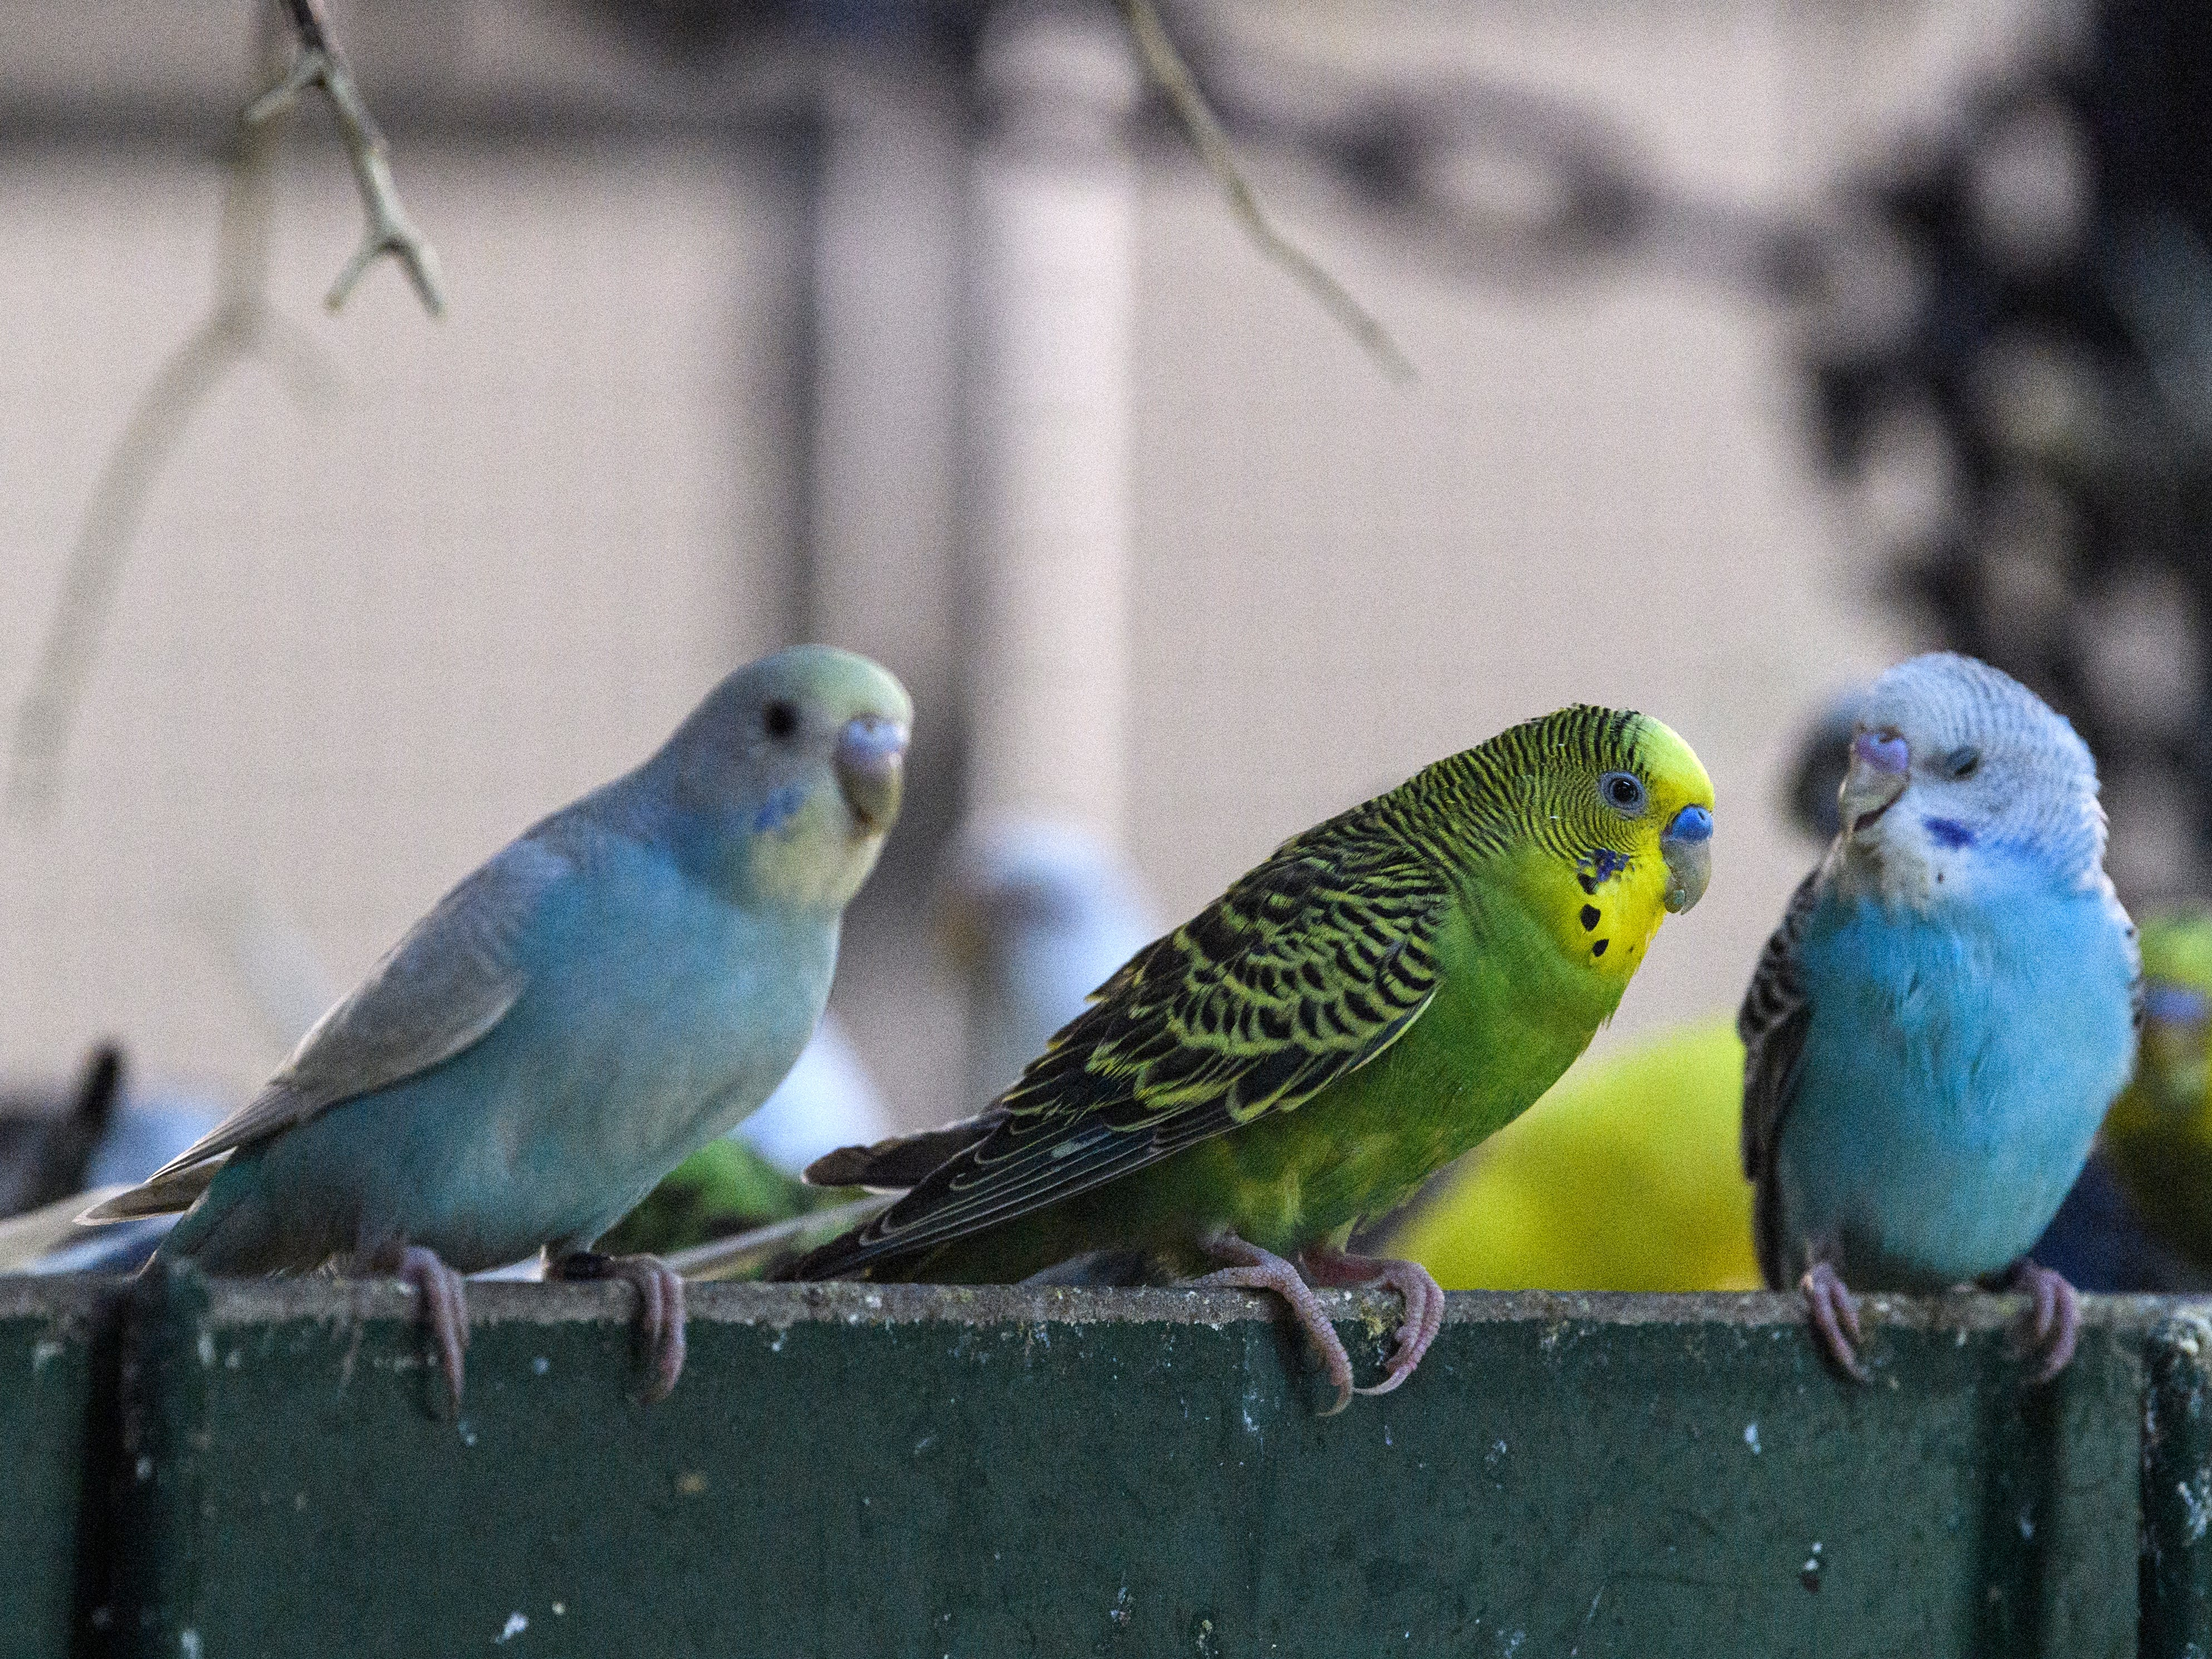 Budgies, also known as parakeets, hang out in their cage after eating a mid-morning breakfast at Mesker Park Zoo in Evansville, Ind., Thursday, May 2, 2019. A new interactive atrium exhibit will house the 350 budgies, who are currently being sequestered inside until temperatures get warmer in Mid-May.